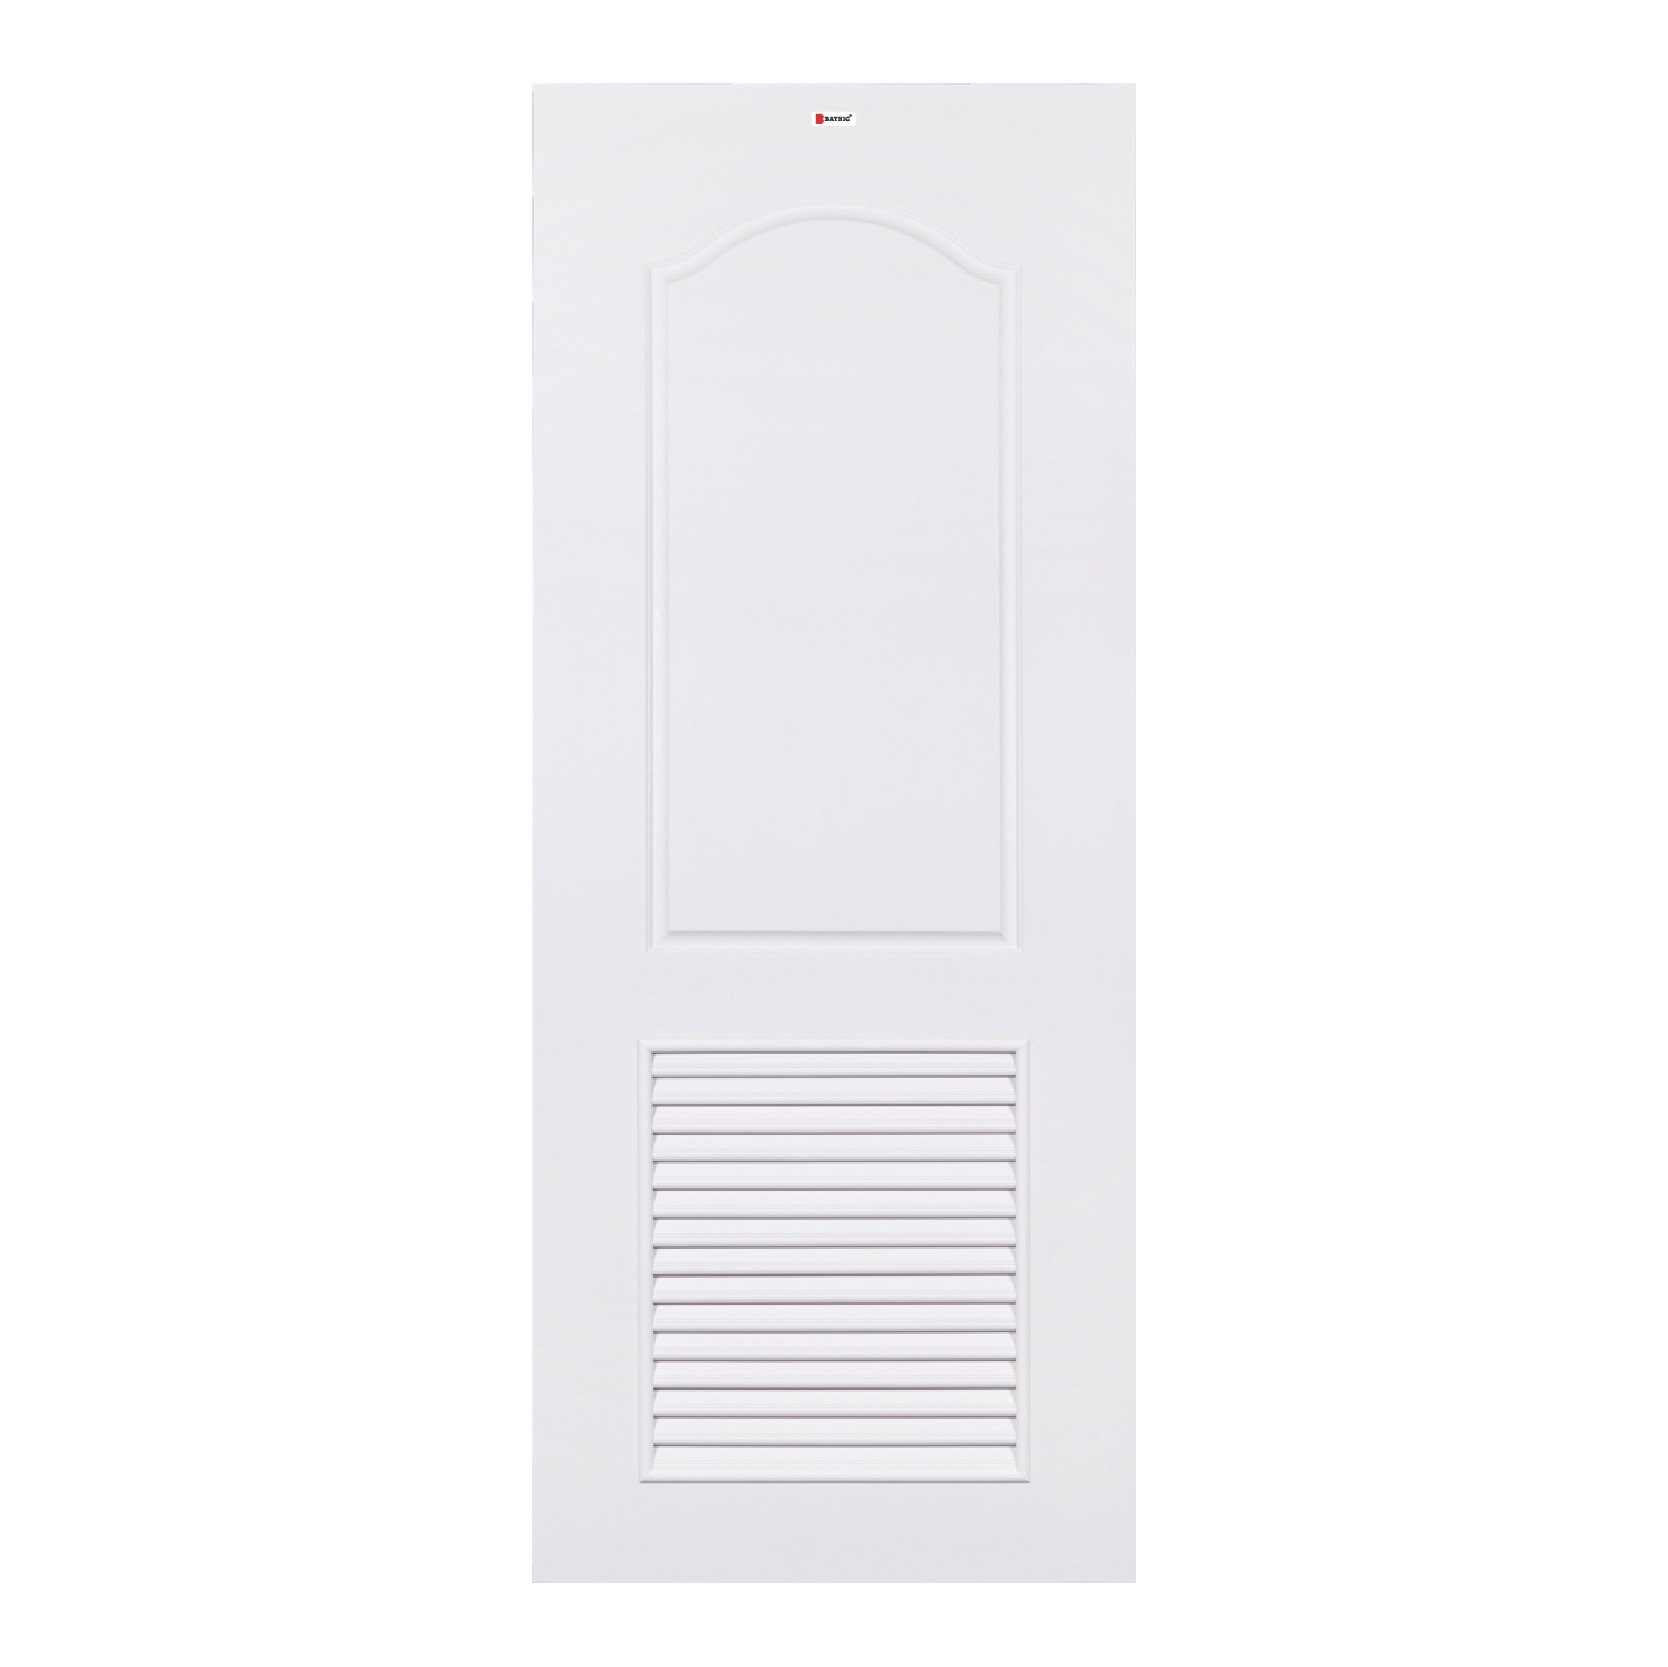 door-upvc-bathic-btl201-white-1